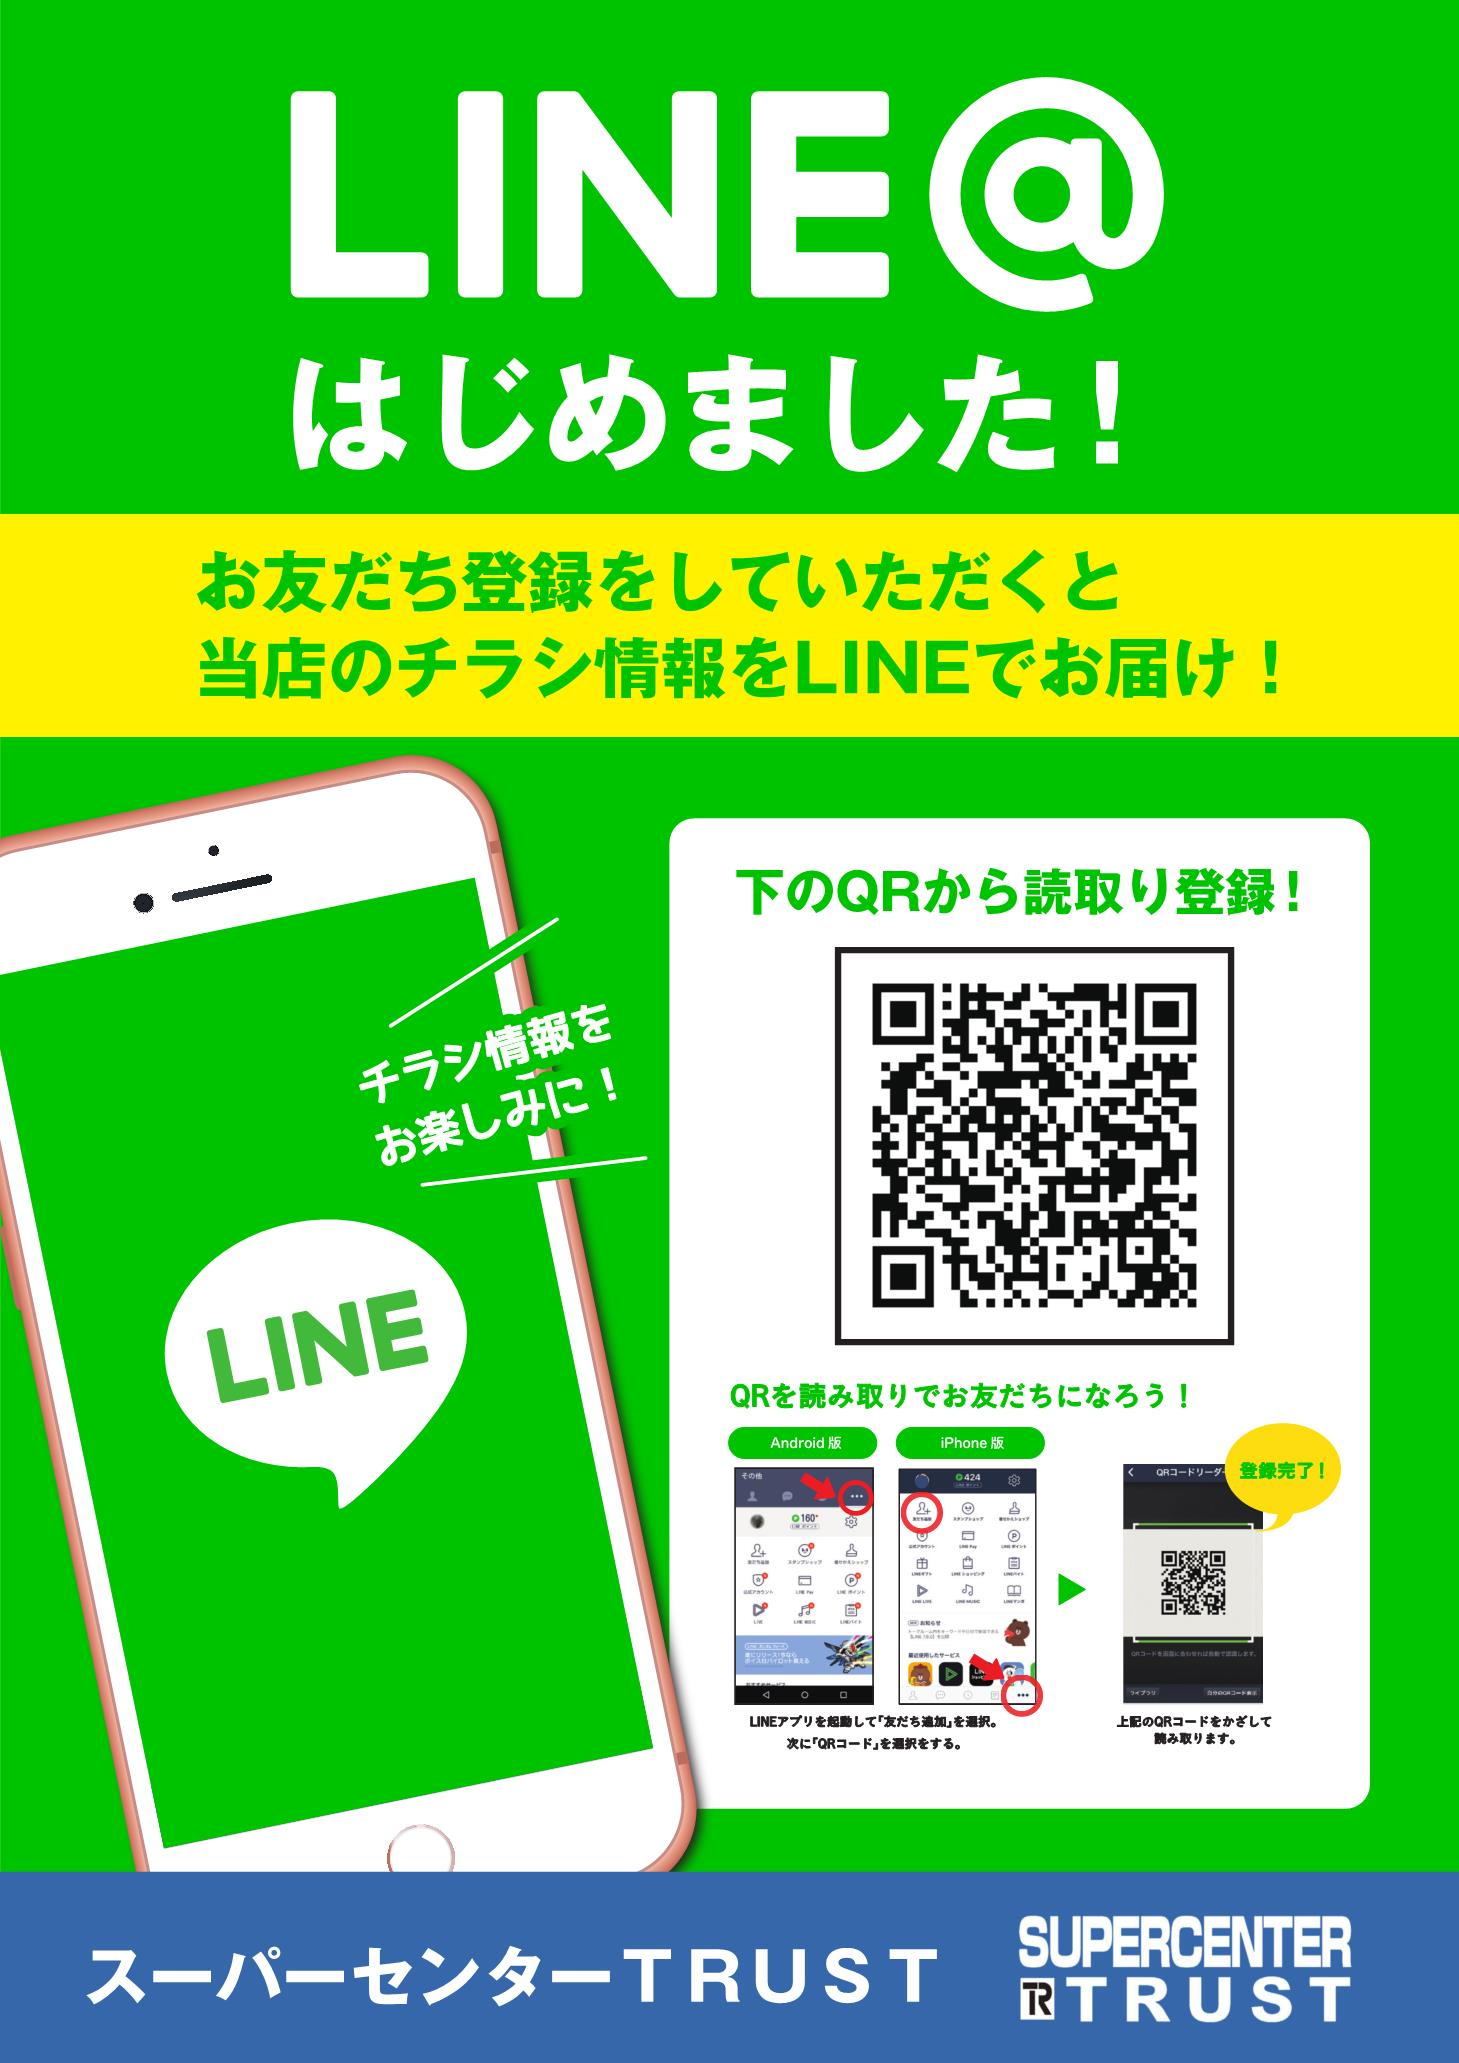 【トラスト雄物川店】LINE@始めました!!